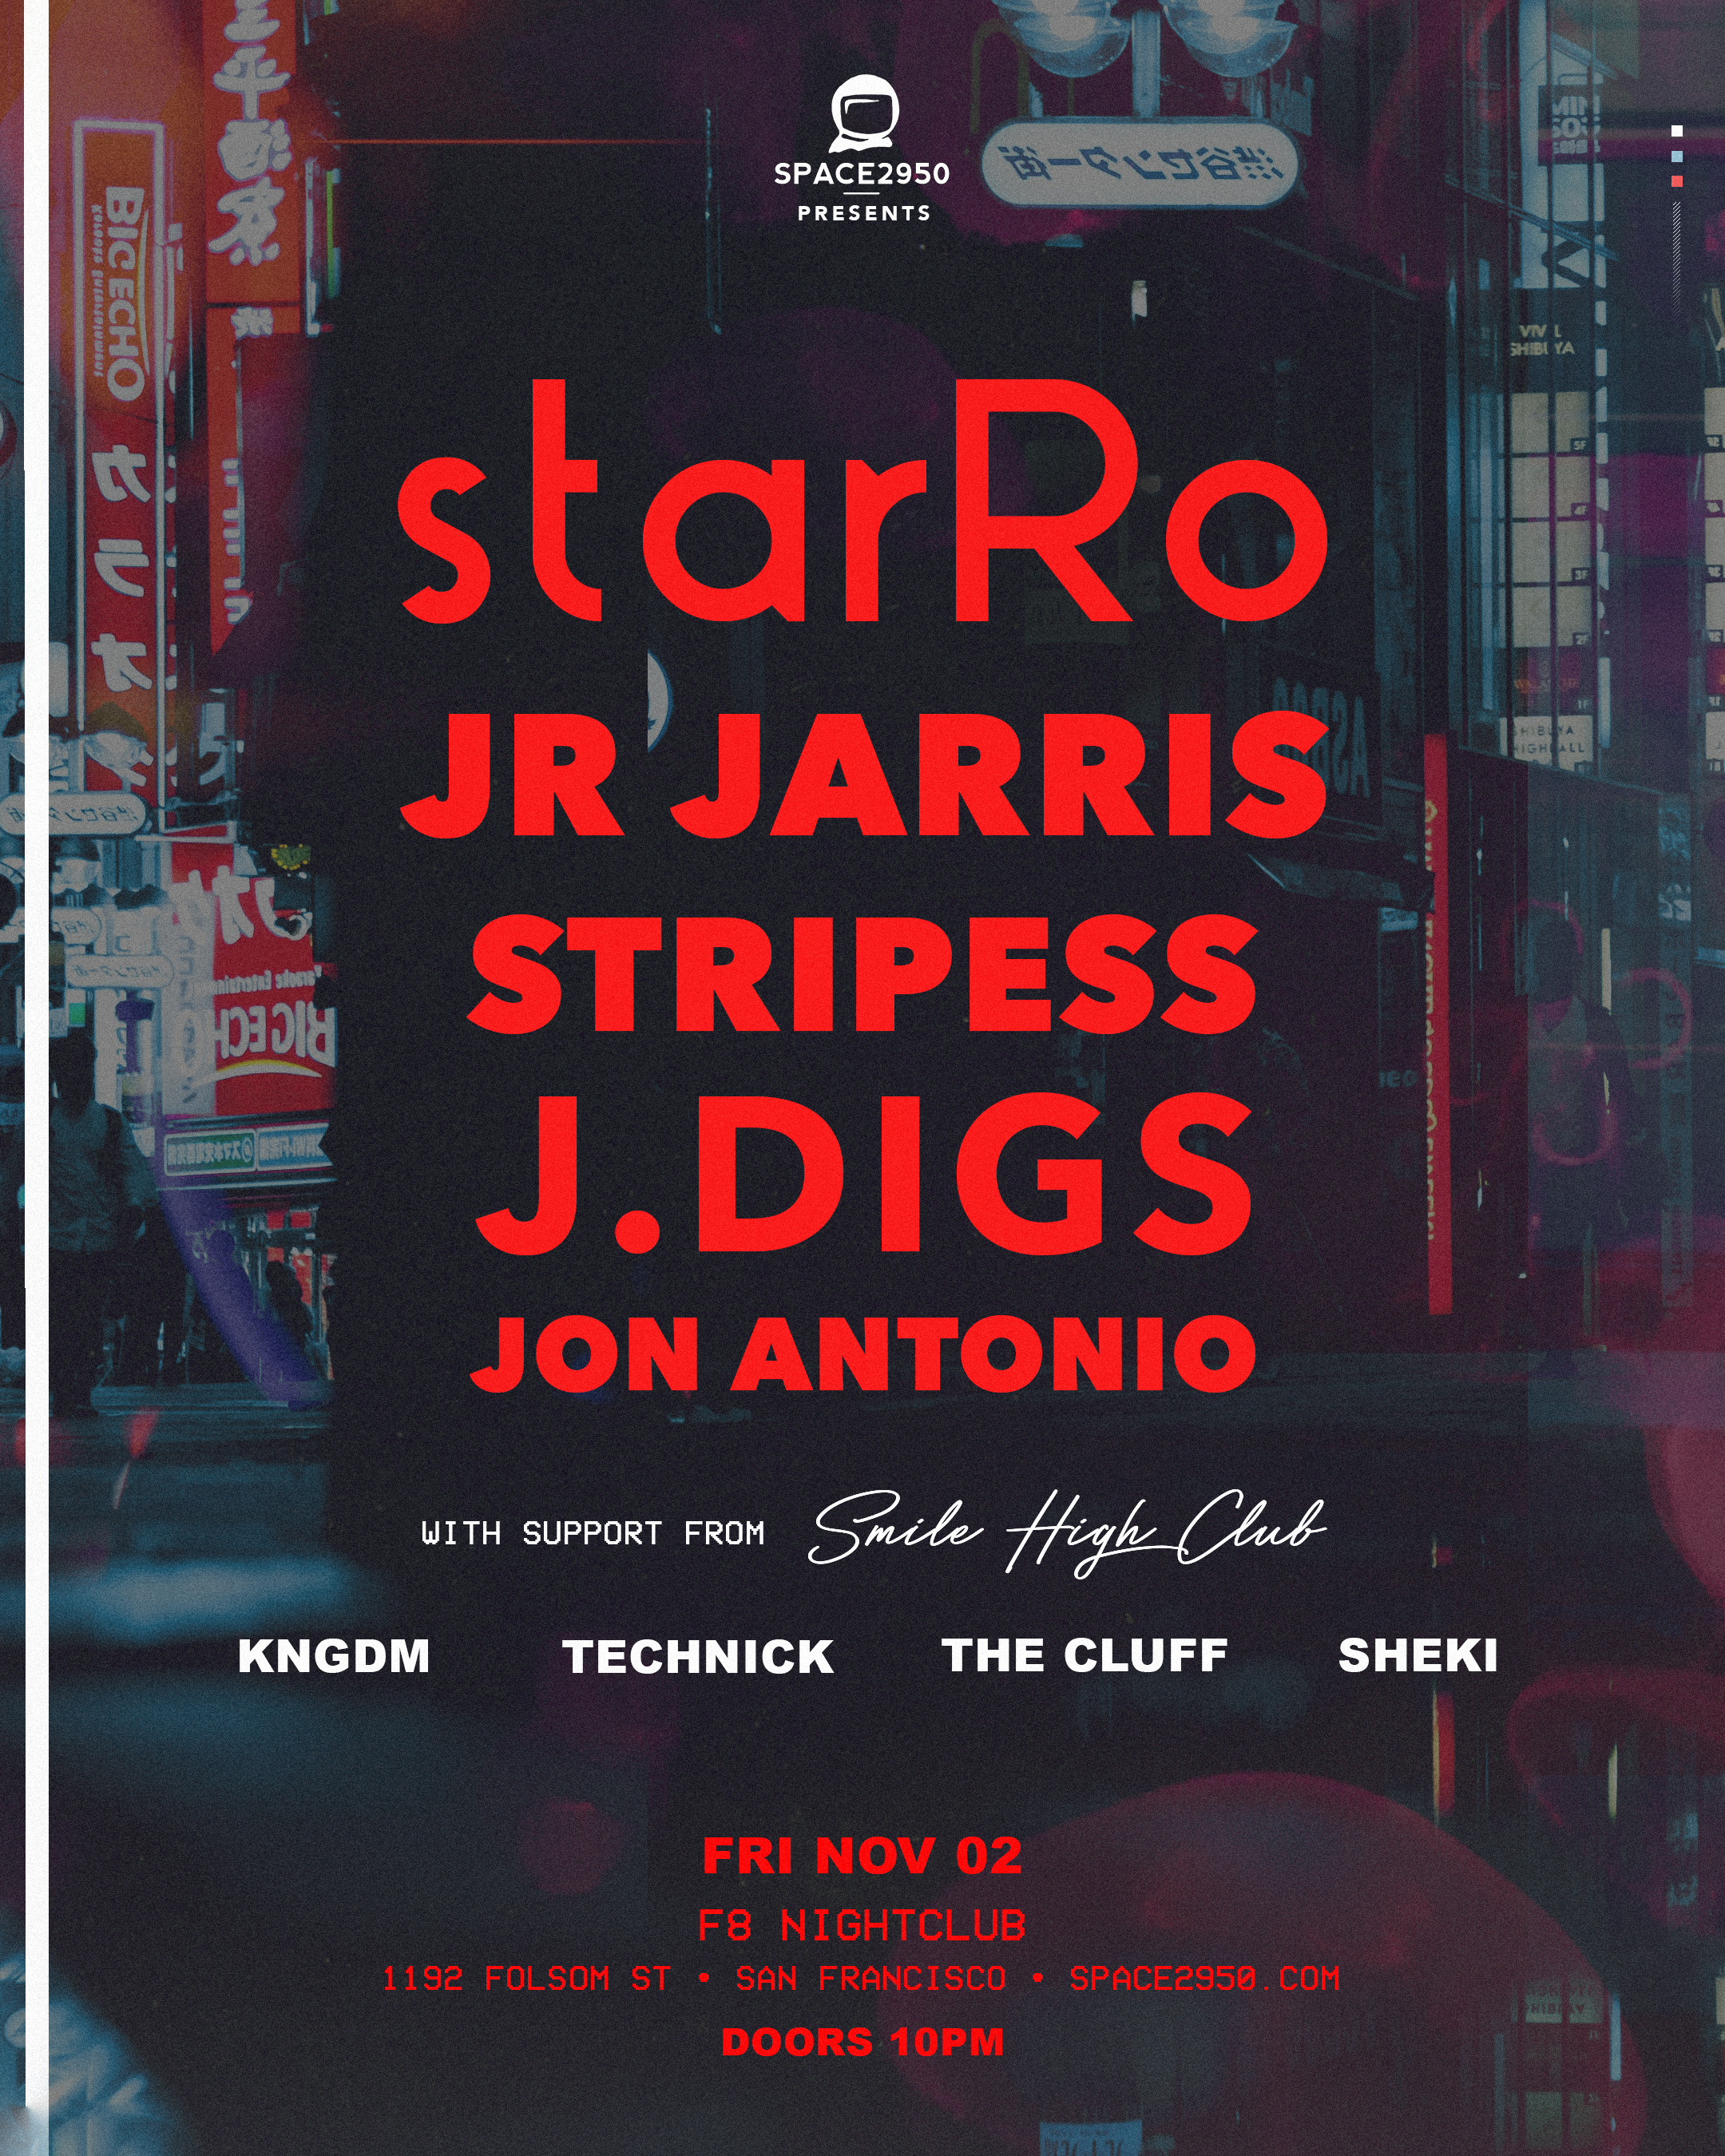 starRo + JR JARRIS Event Flyer (1).jpg